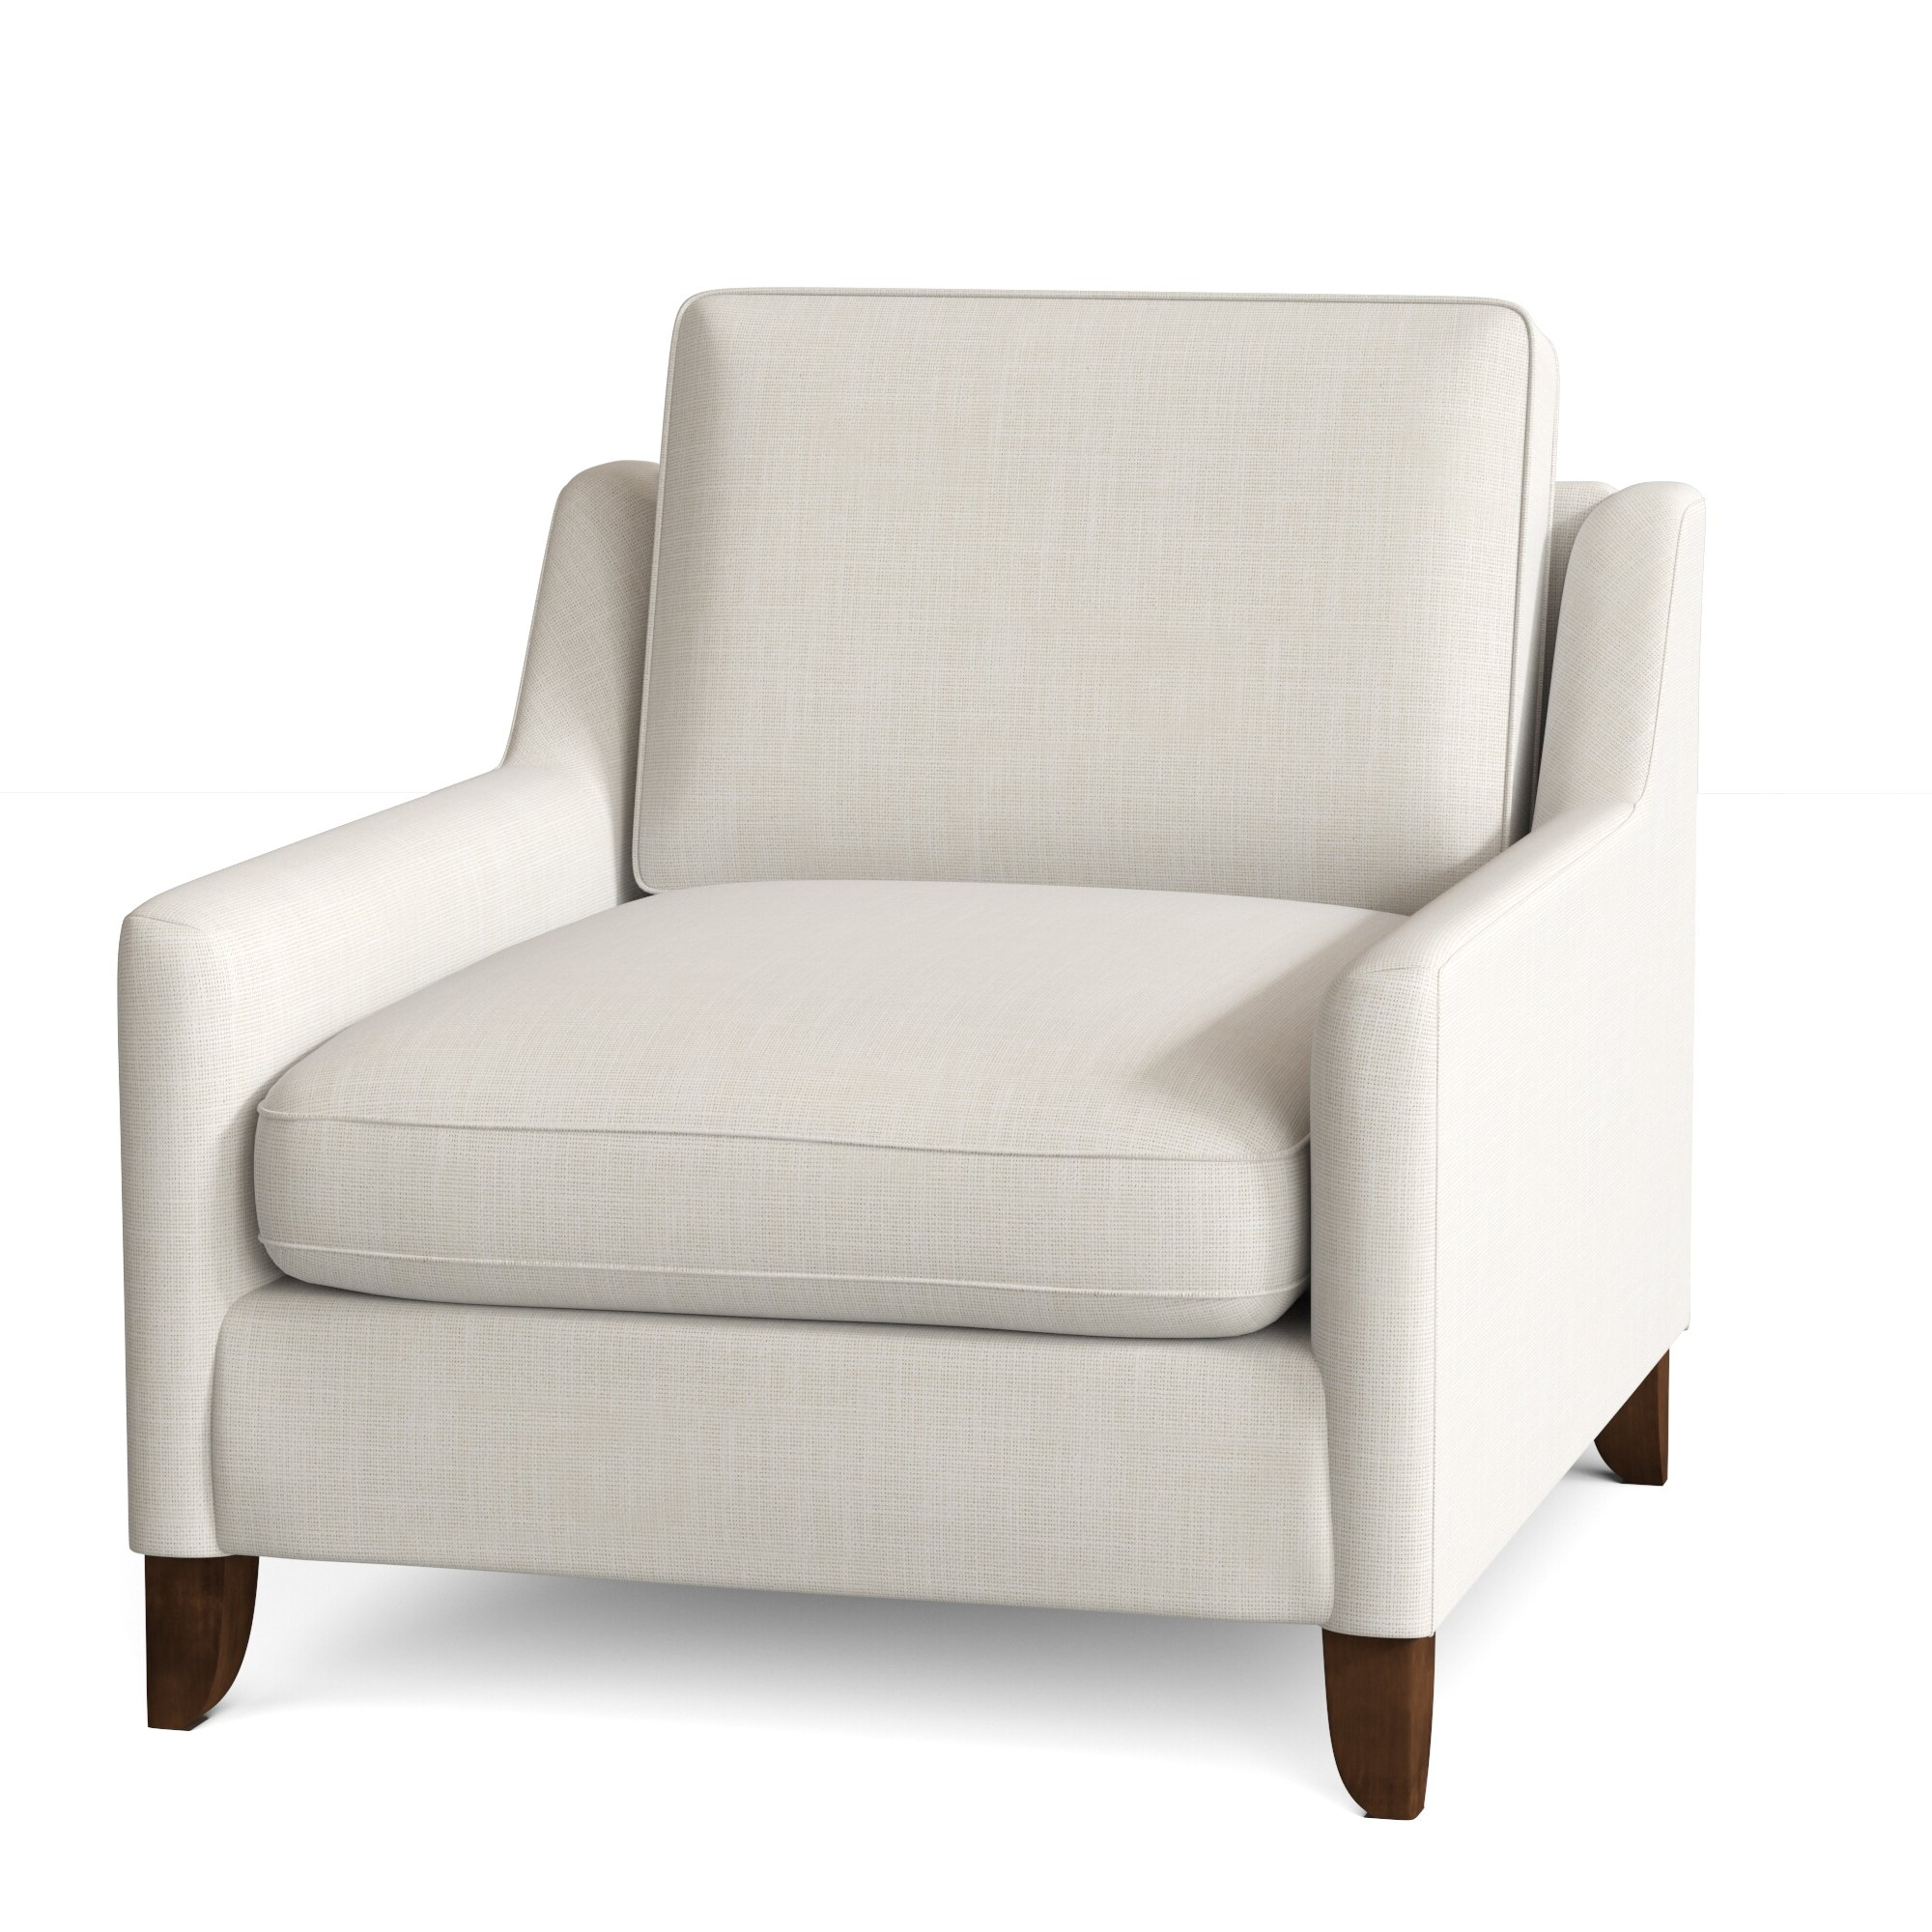 Trendy Arm Microfiber Accent Chairs You'll Love In (View 3 of 20)